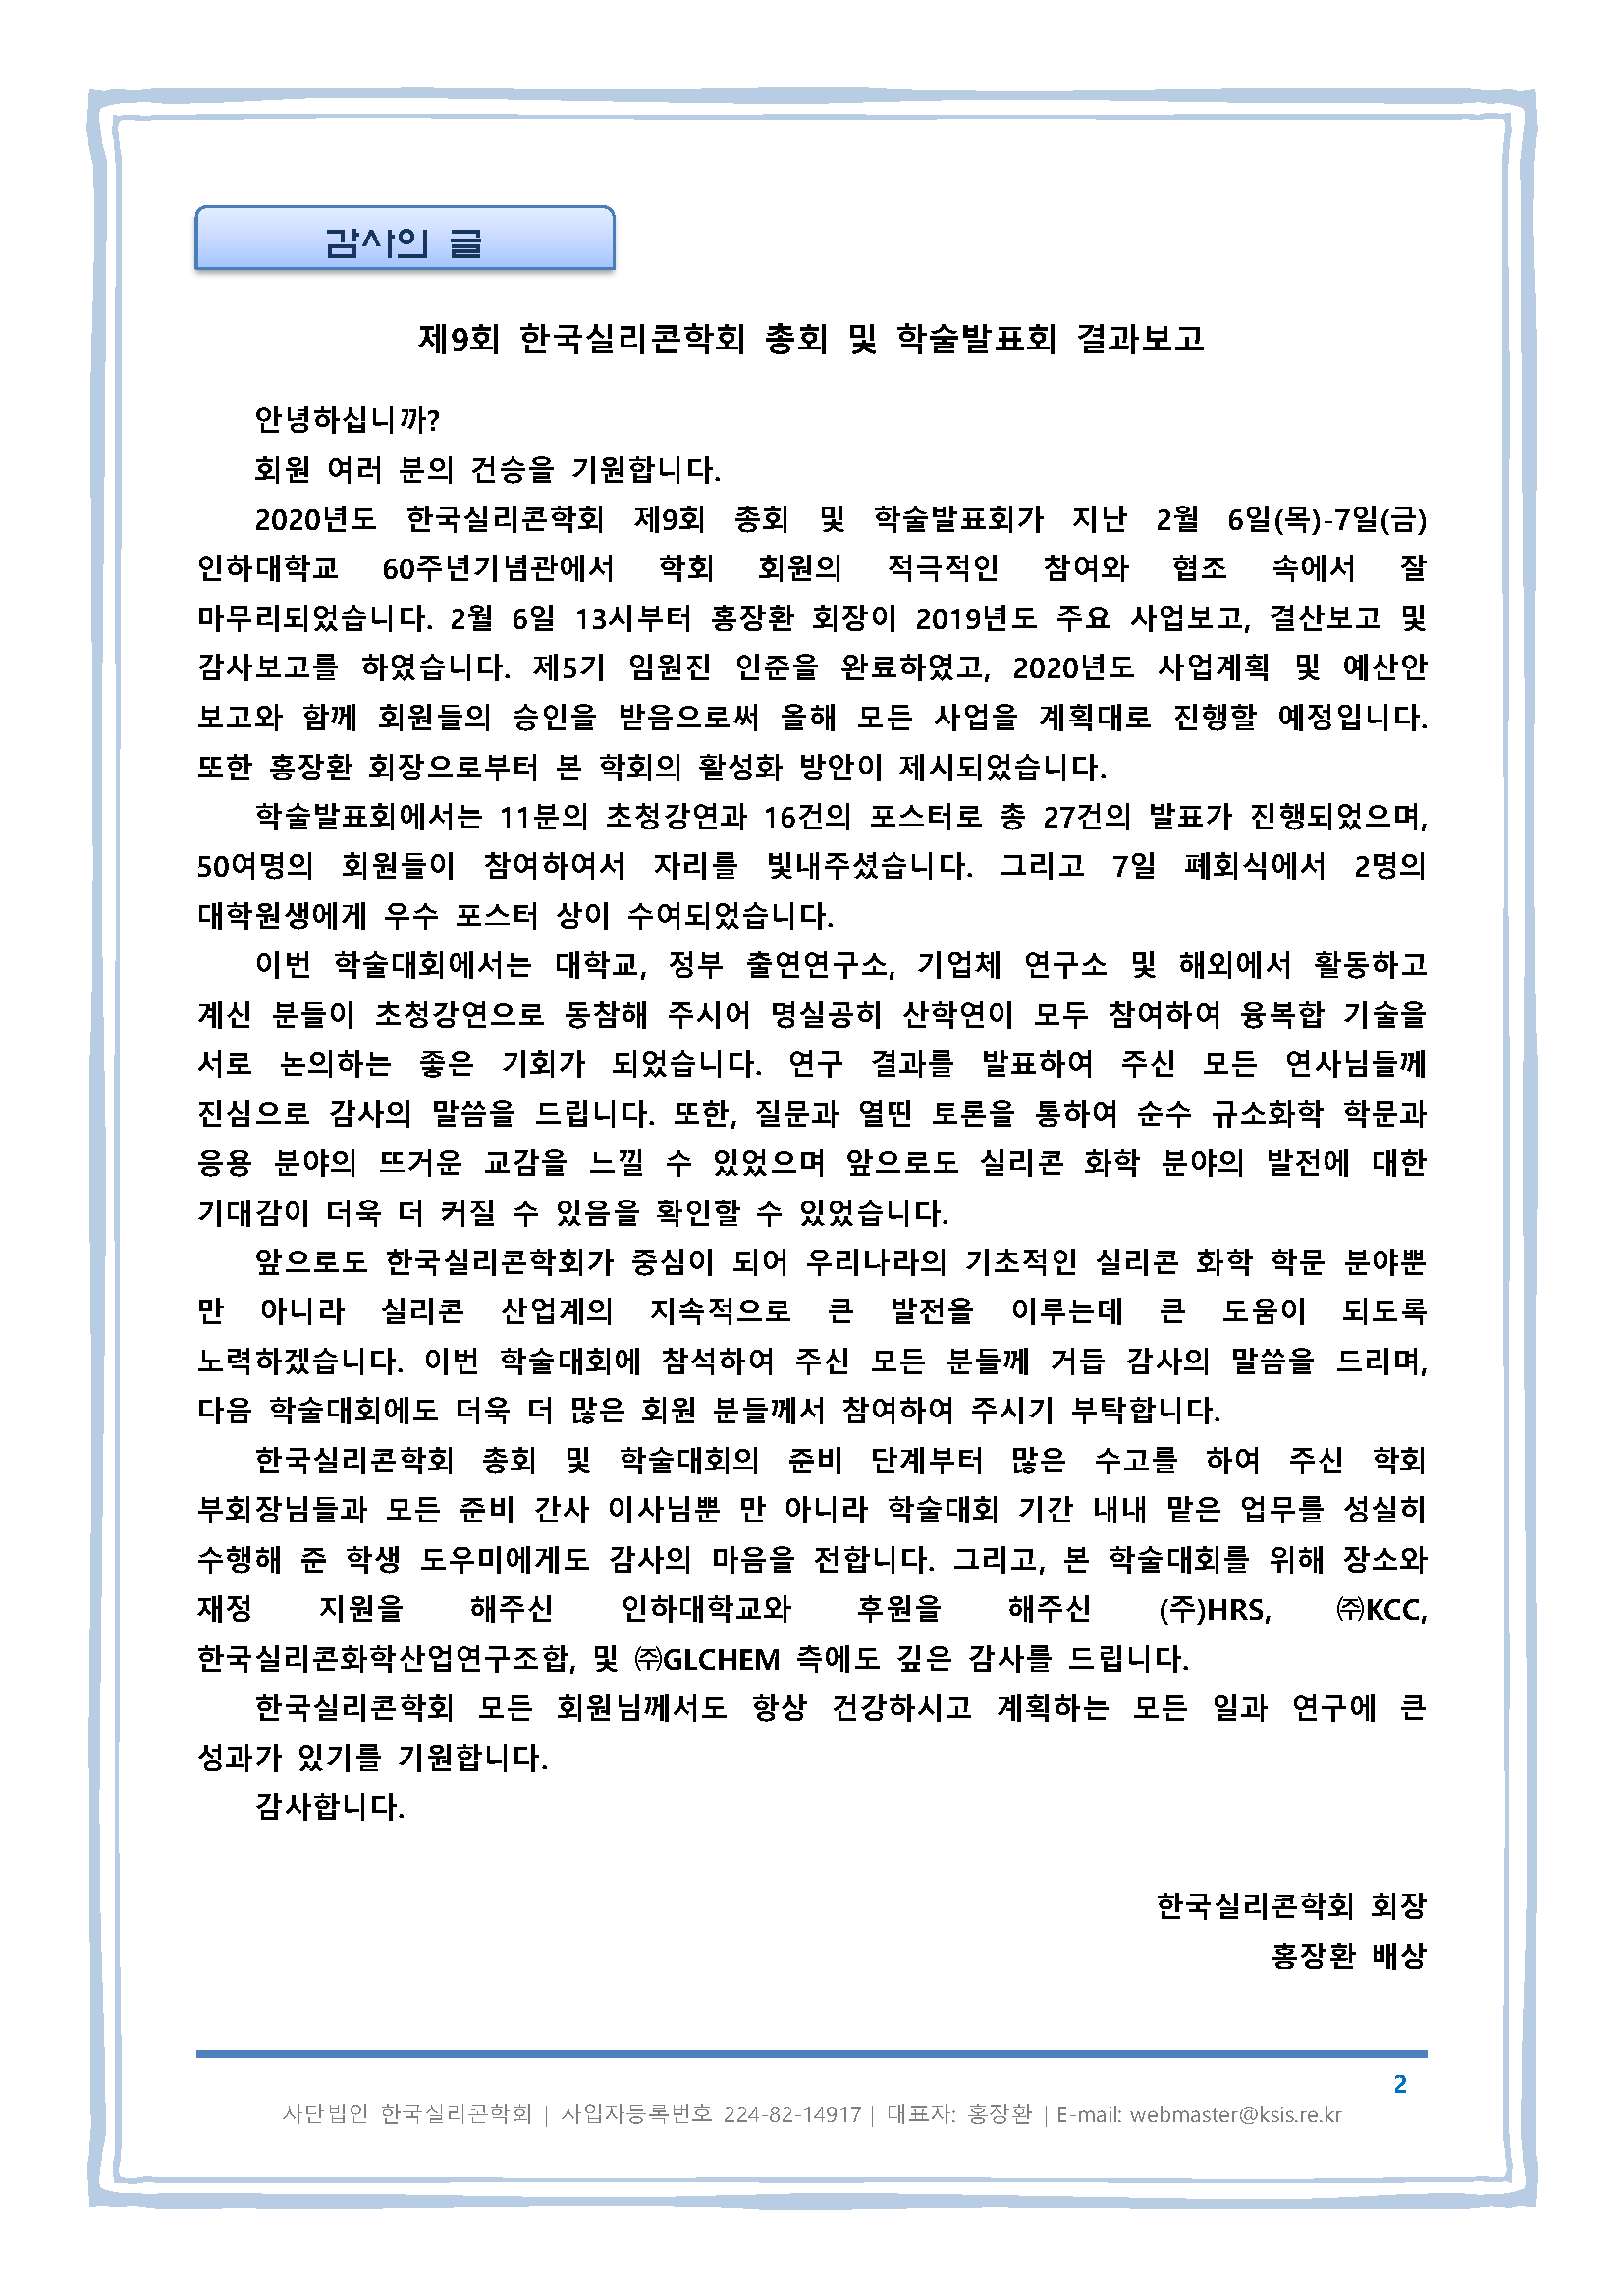 2020-Si_news letter_Page_2.png